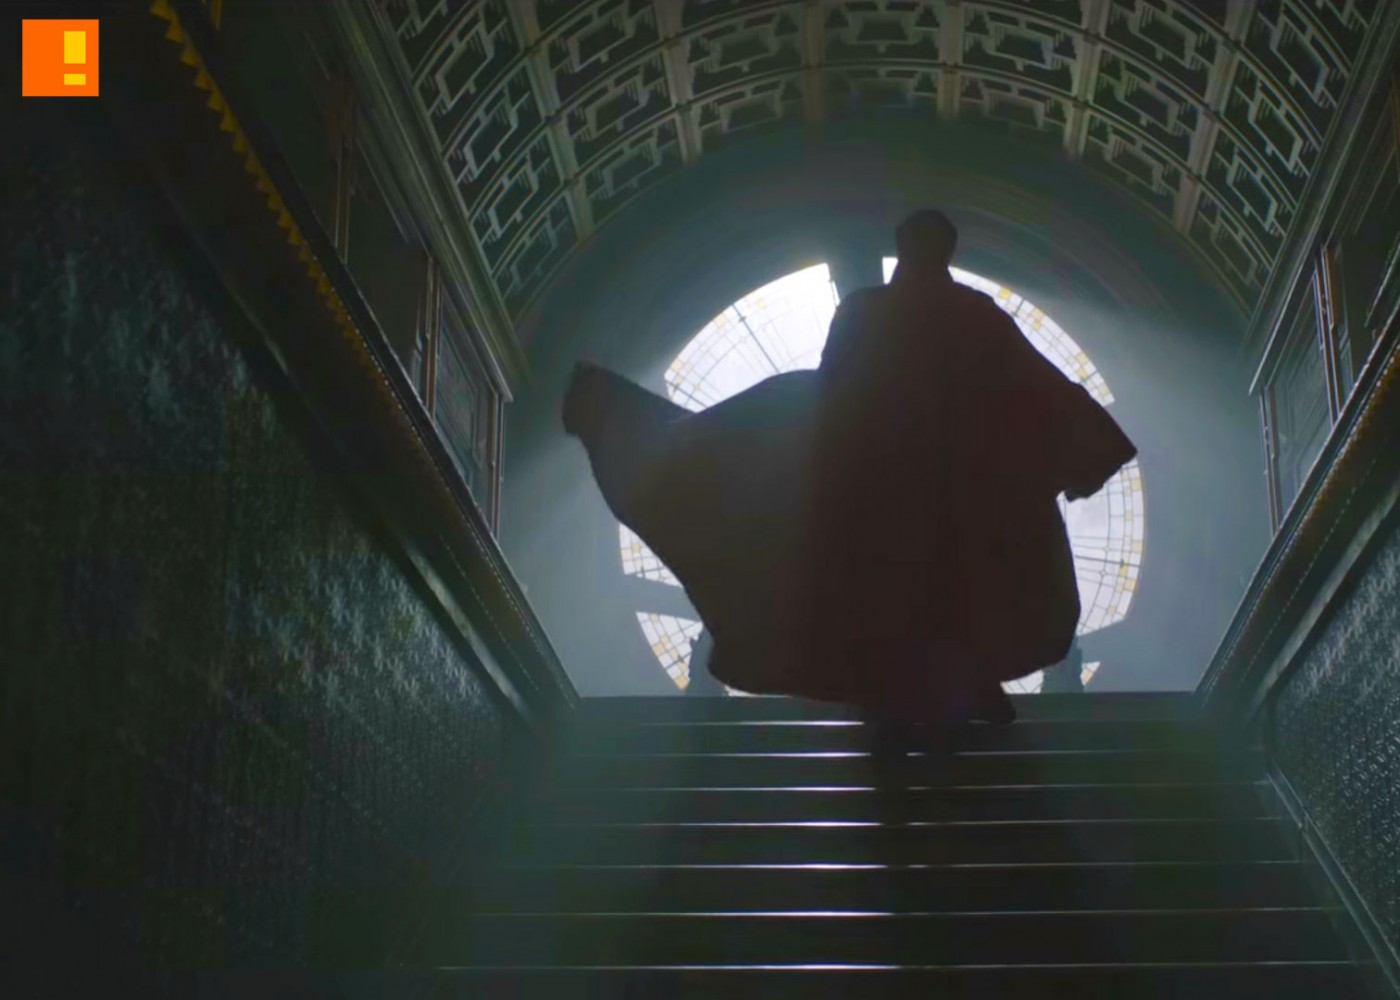 doctor strange, trailer,the action pixel, @theactionpixel, benedict cumberbatch, doctor strange, teaser trailer, jimmy kimmel live, marvel, ancient one, chiwetel ejiofor,